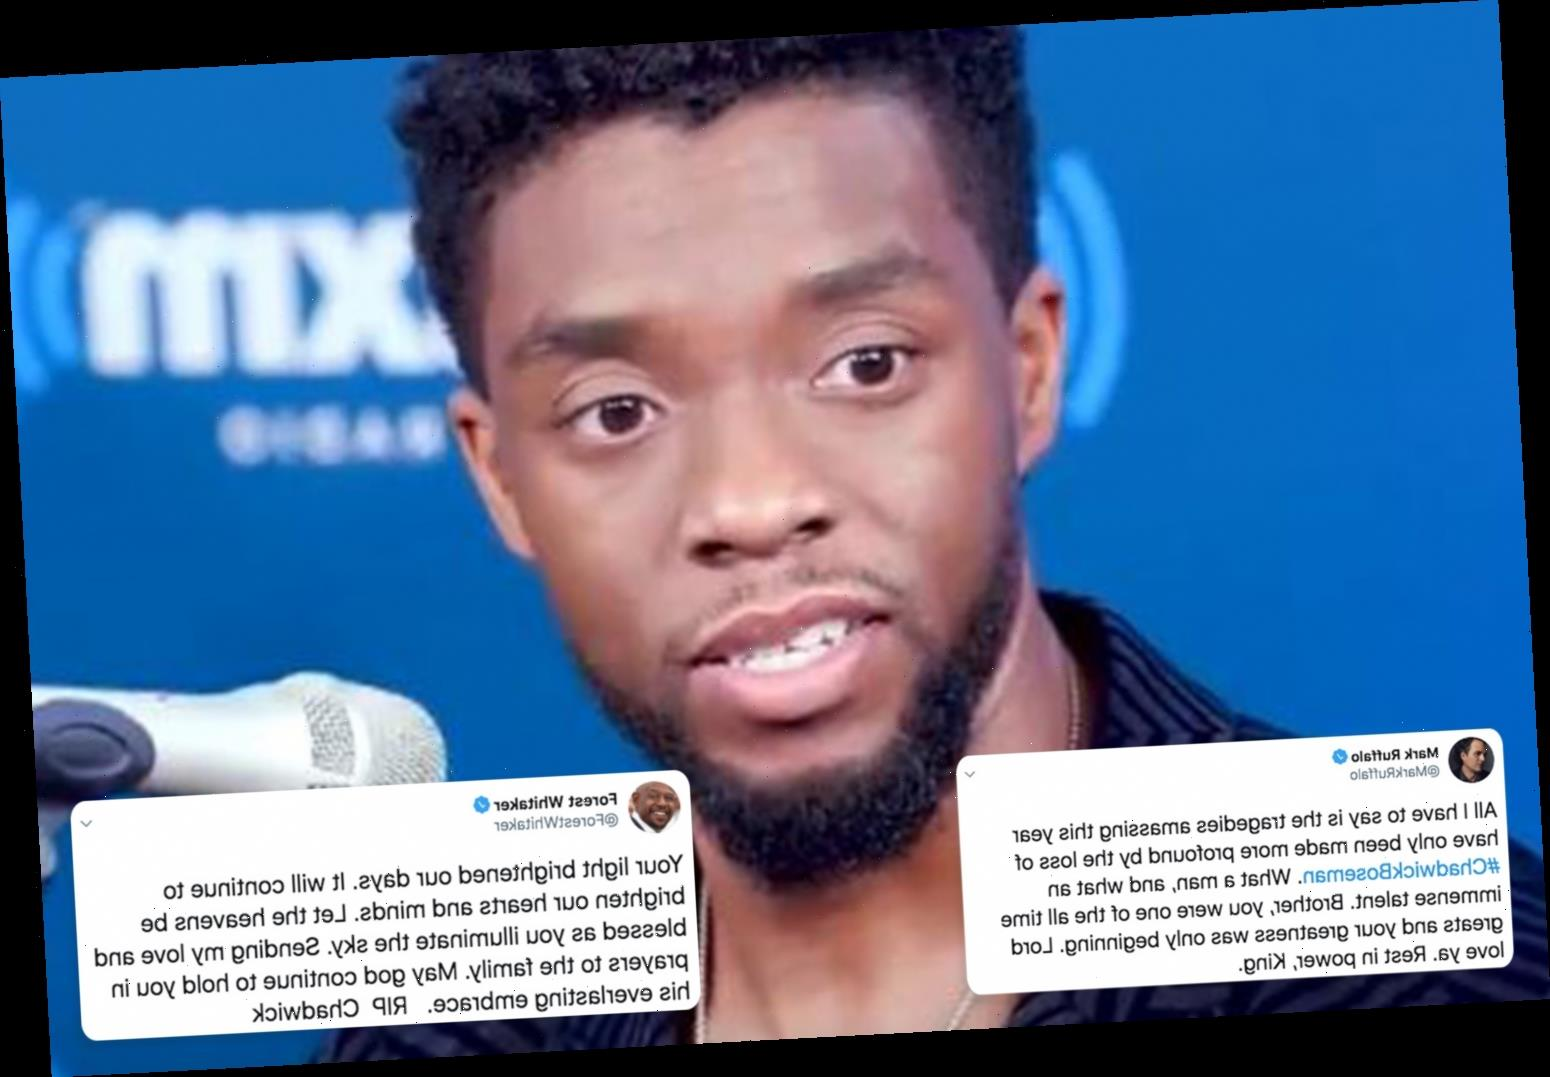 Chadwick Boseman's Black Panther and Avengers co-stars pay tribute to late actor after secret fight against colon cancer